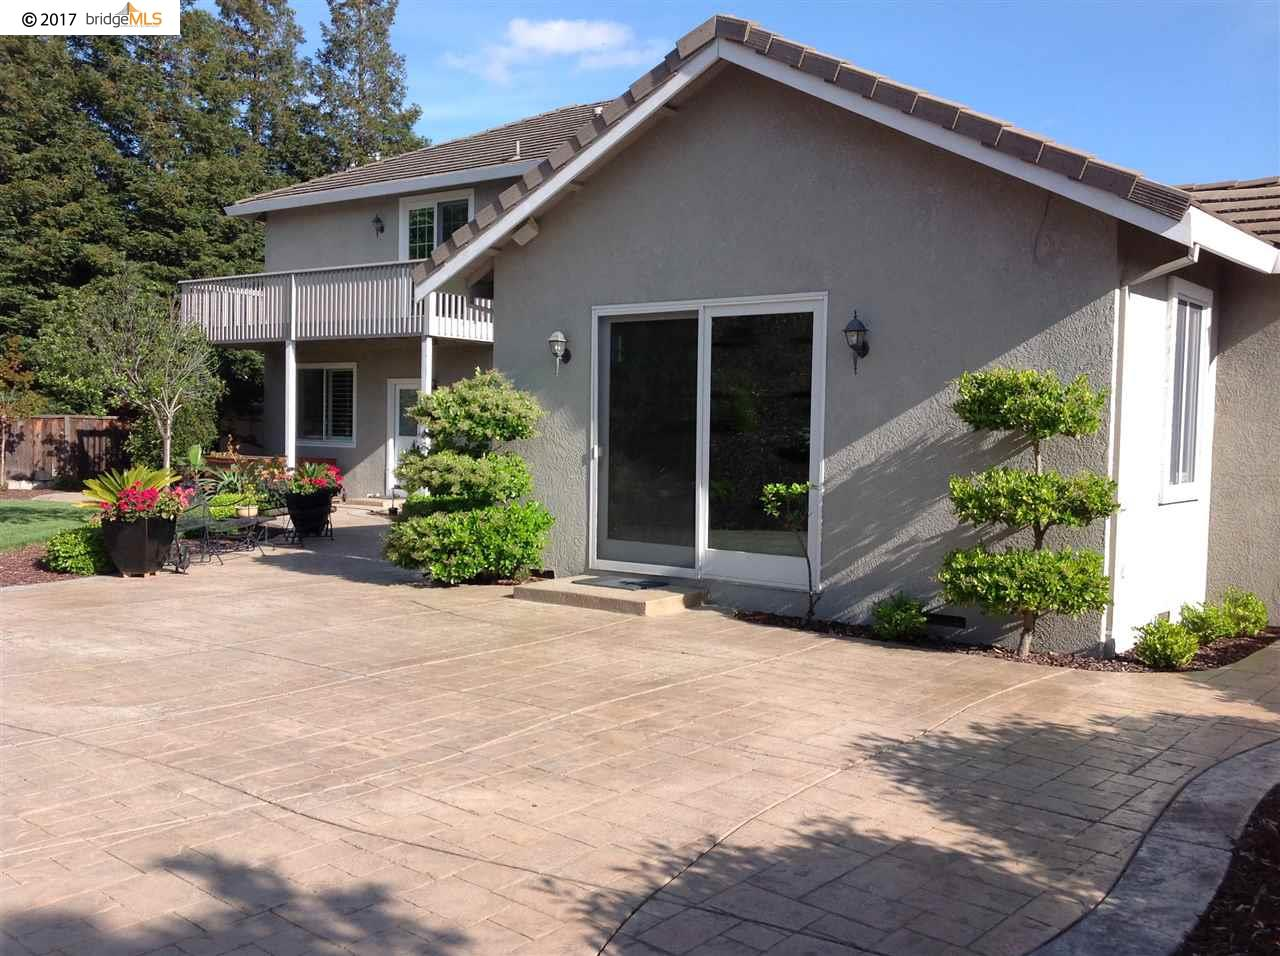 Additional photo for property listing at 3832 Arbolado Drive  WALNUT CREEK, CALIFORNIA 94598